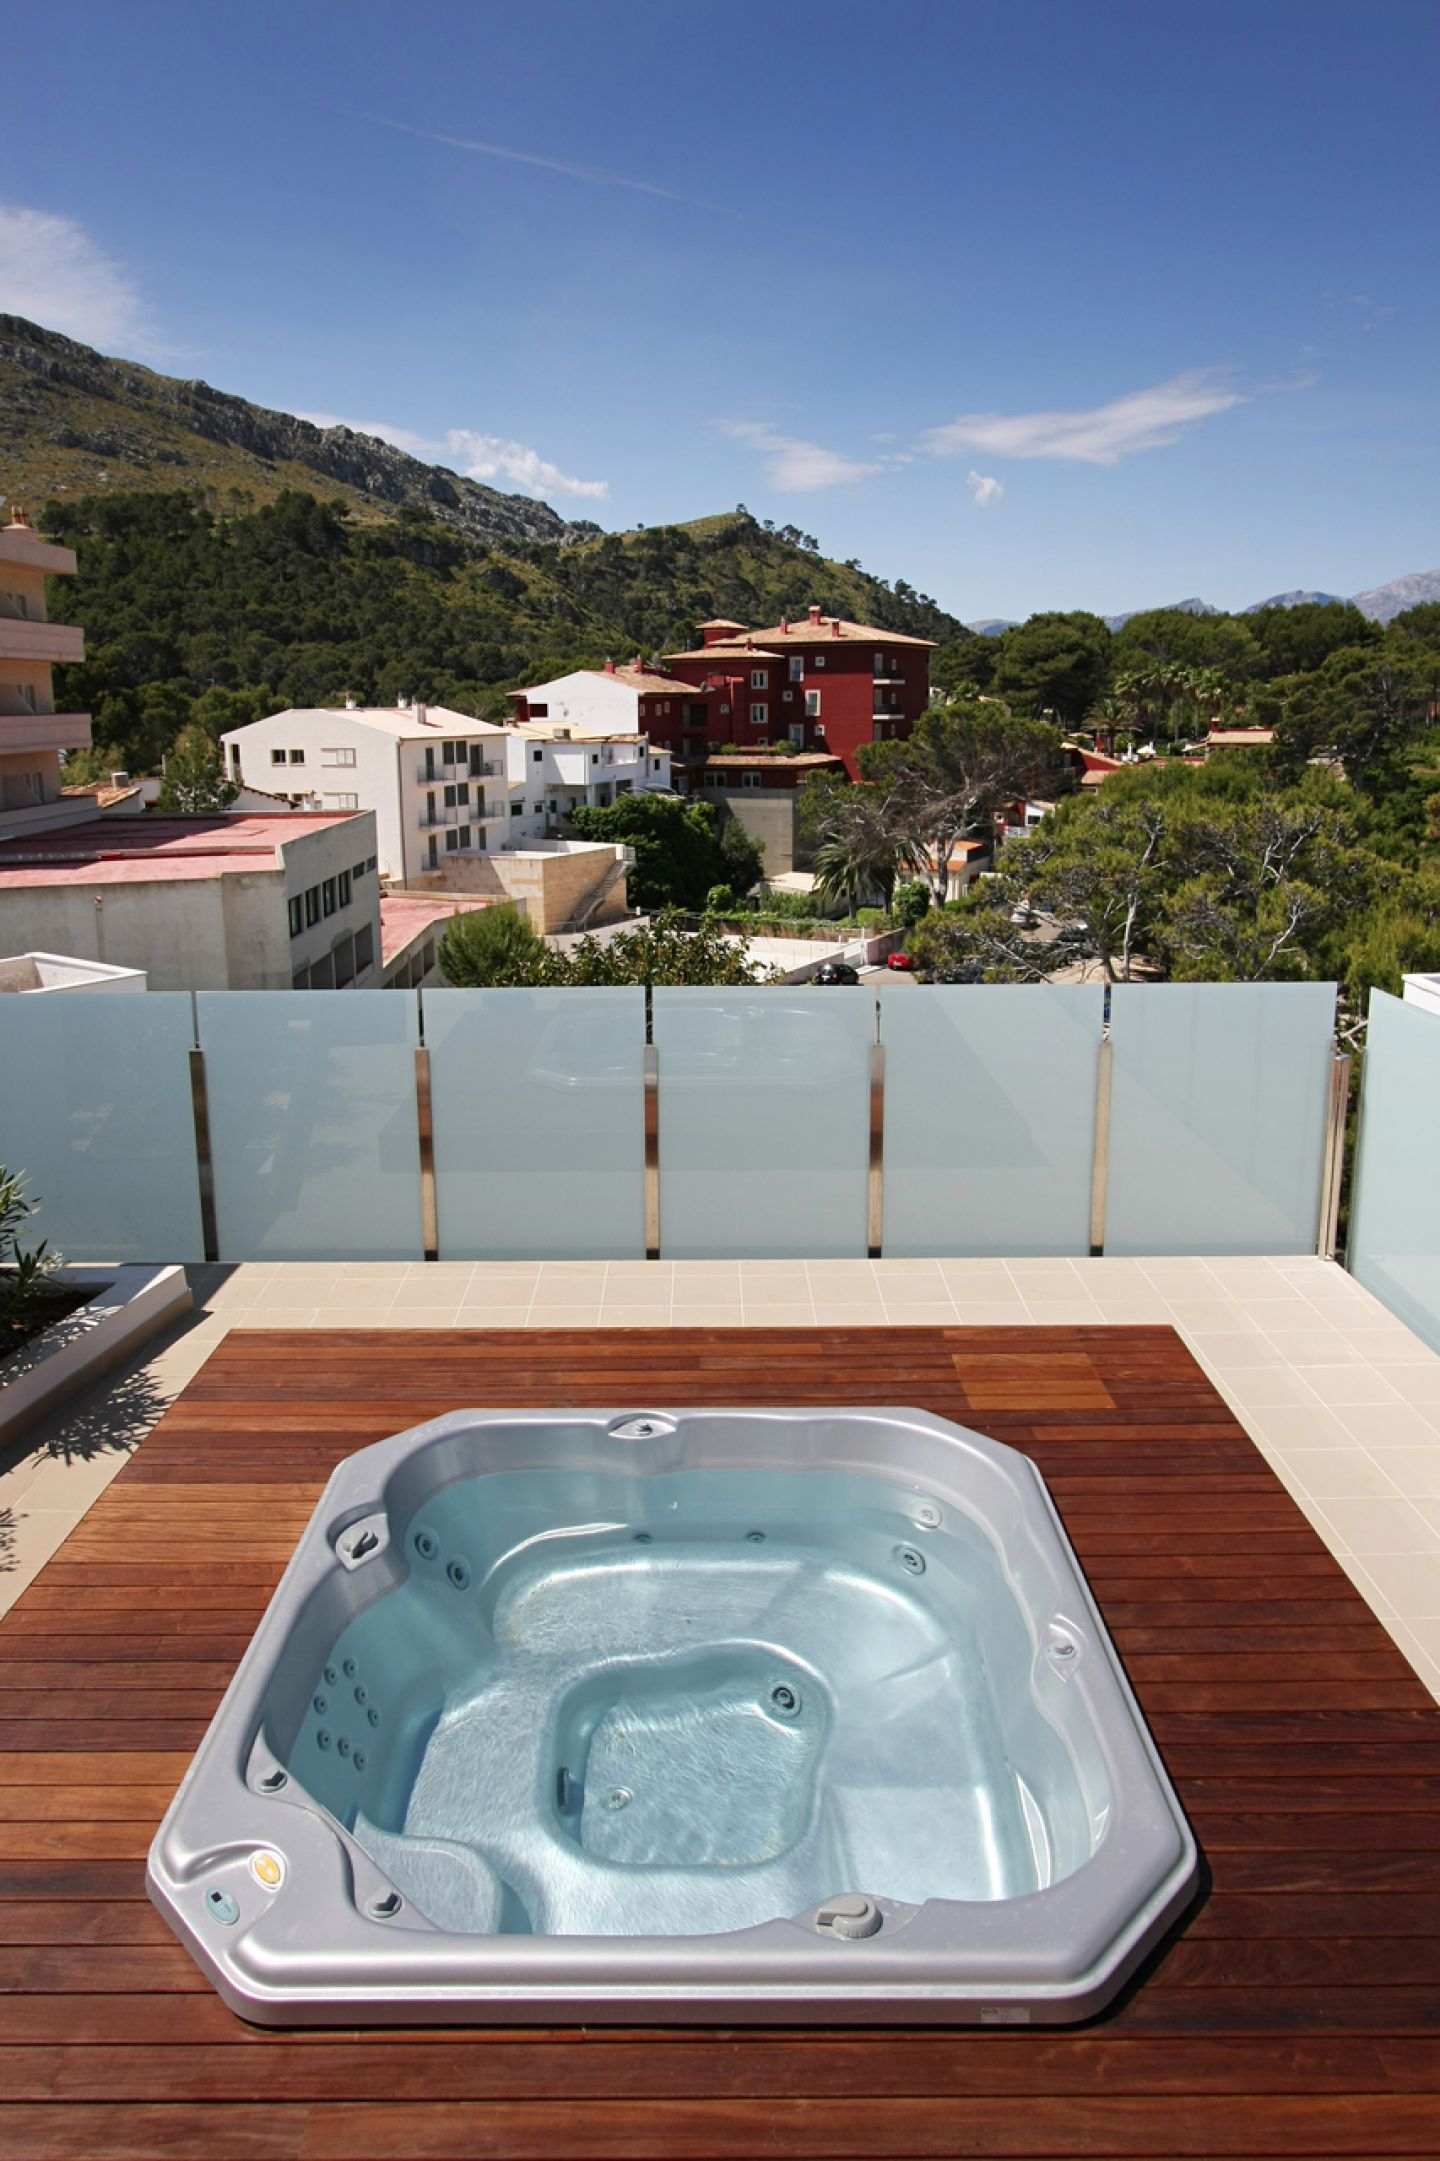 2 Bed Building for sale in Cala San Vicente 16